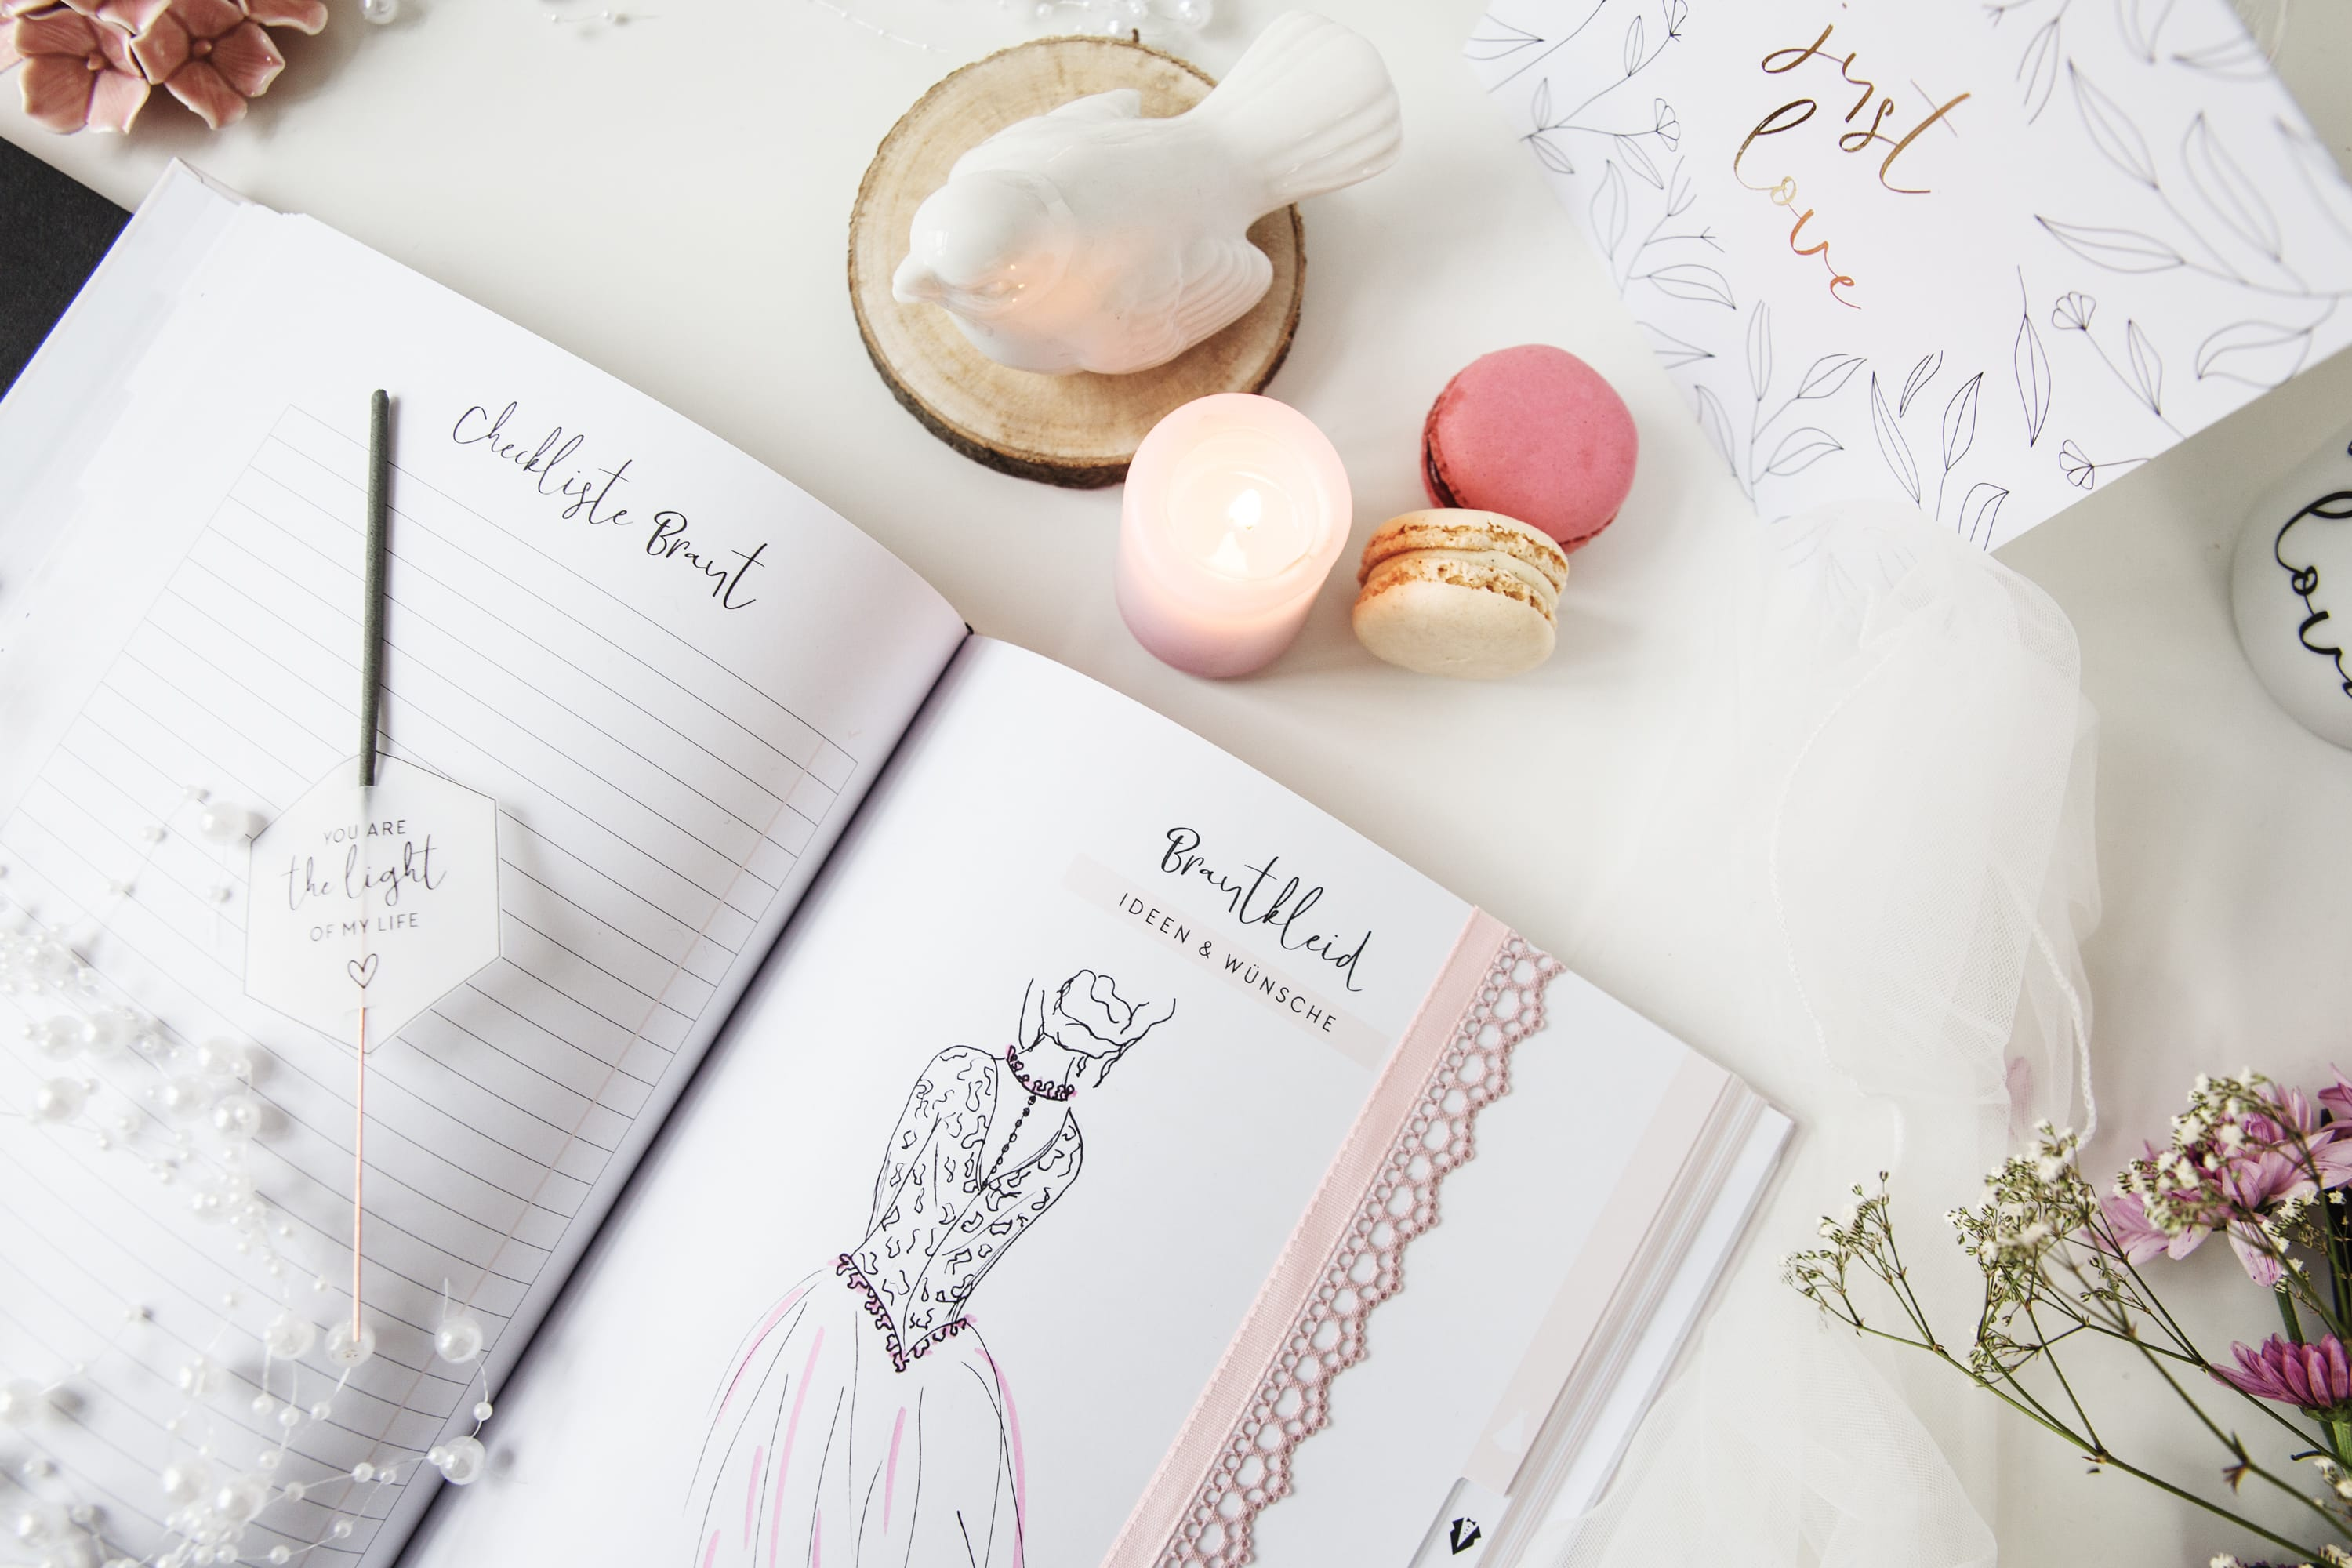 JO_and_JUDY_Planner_07